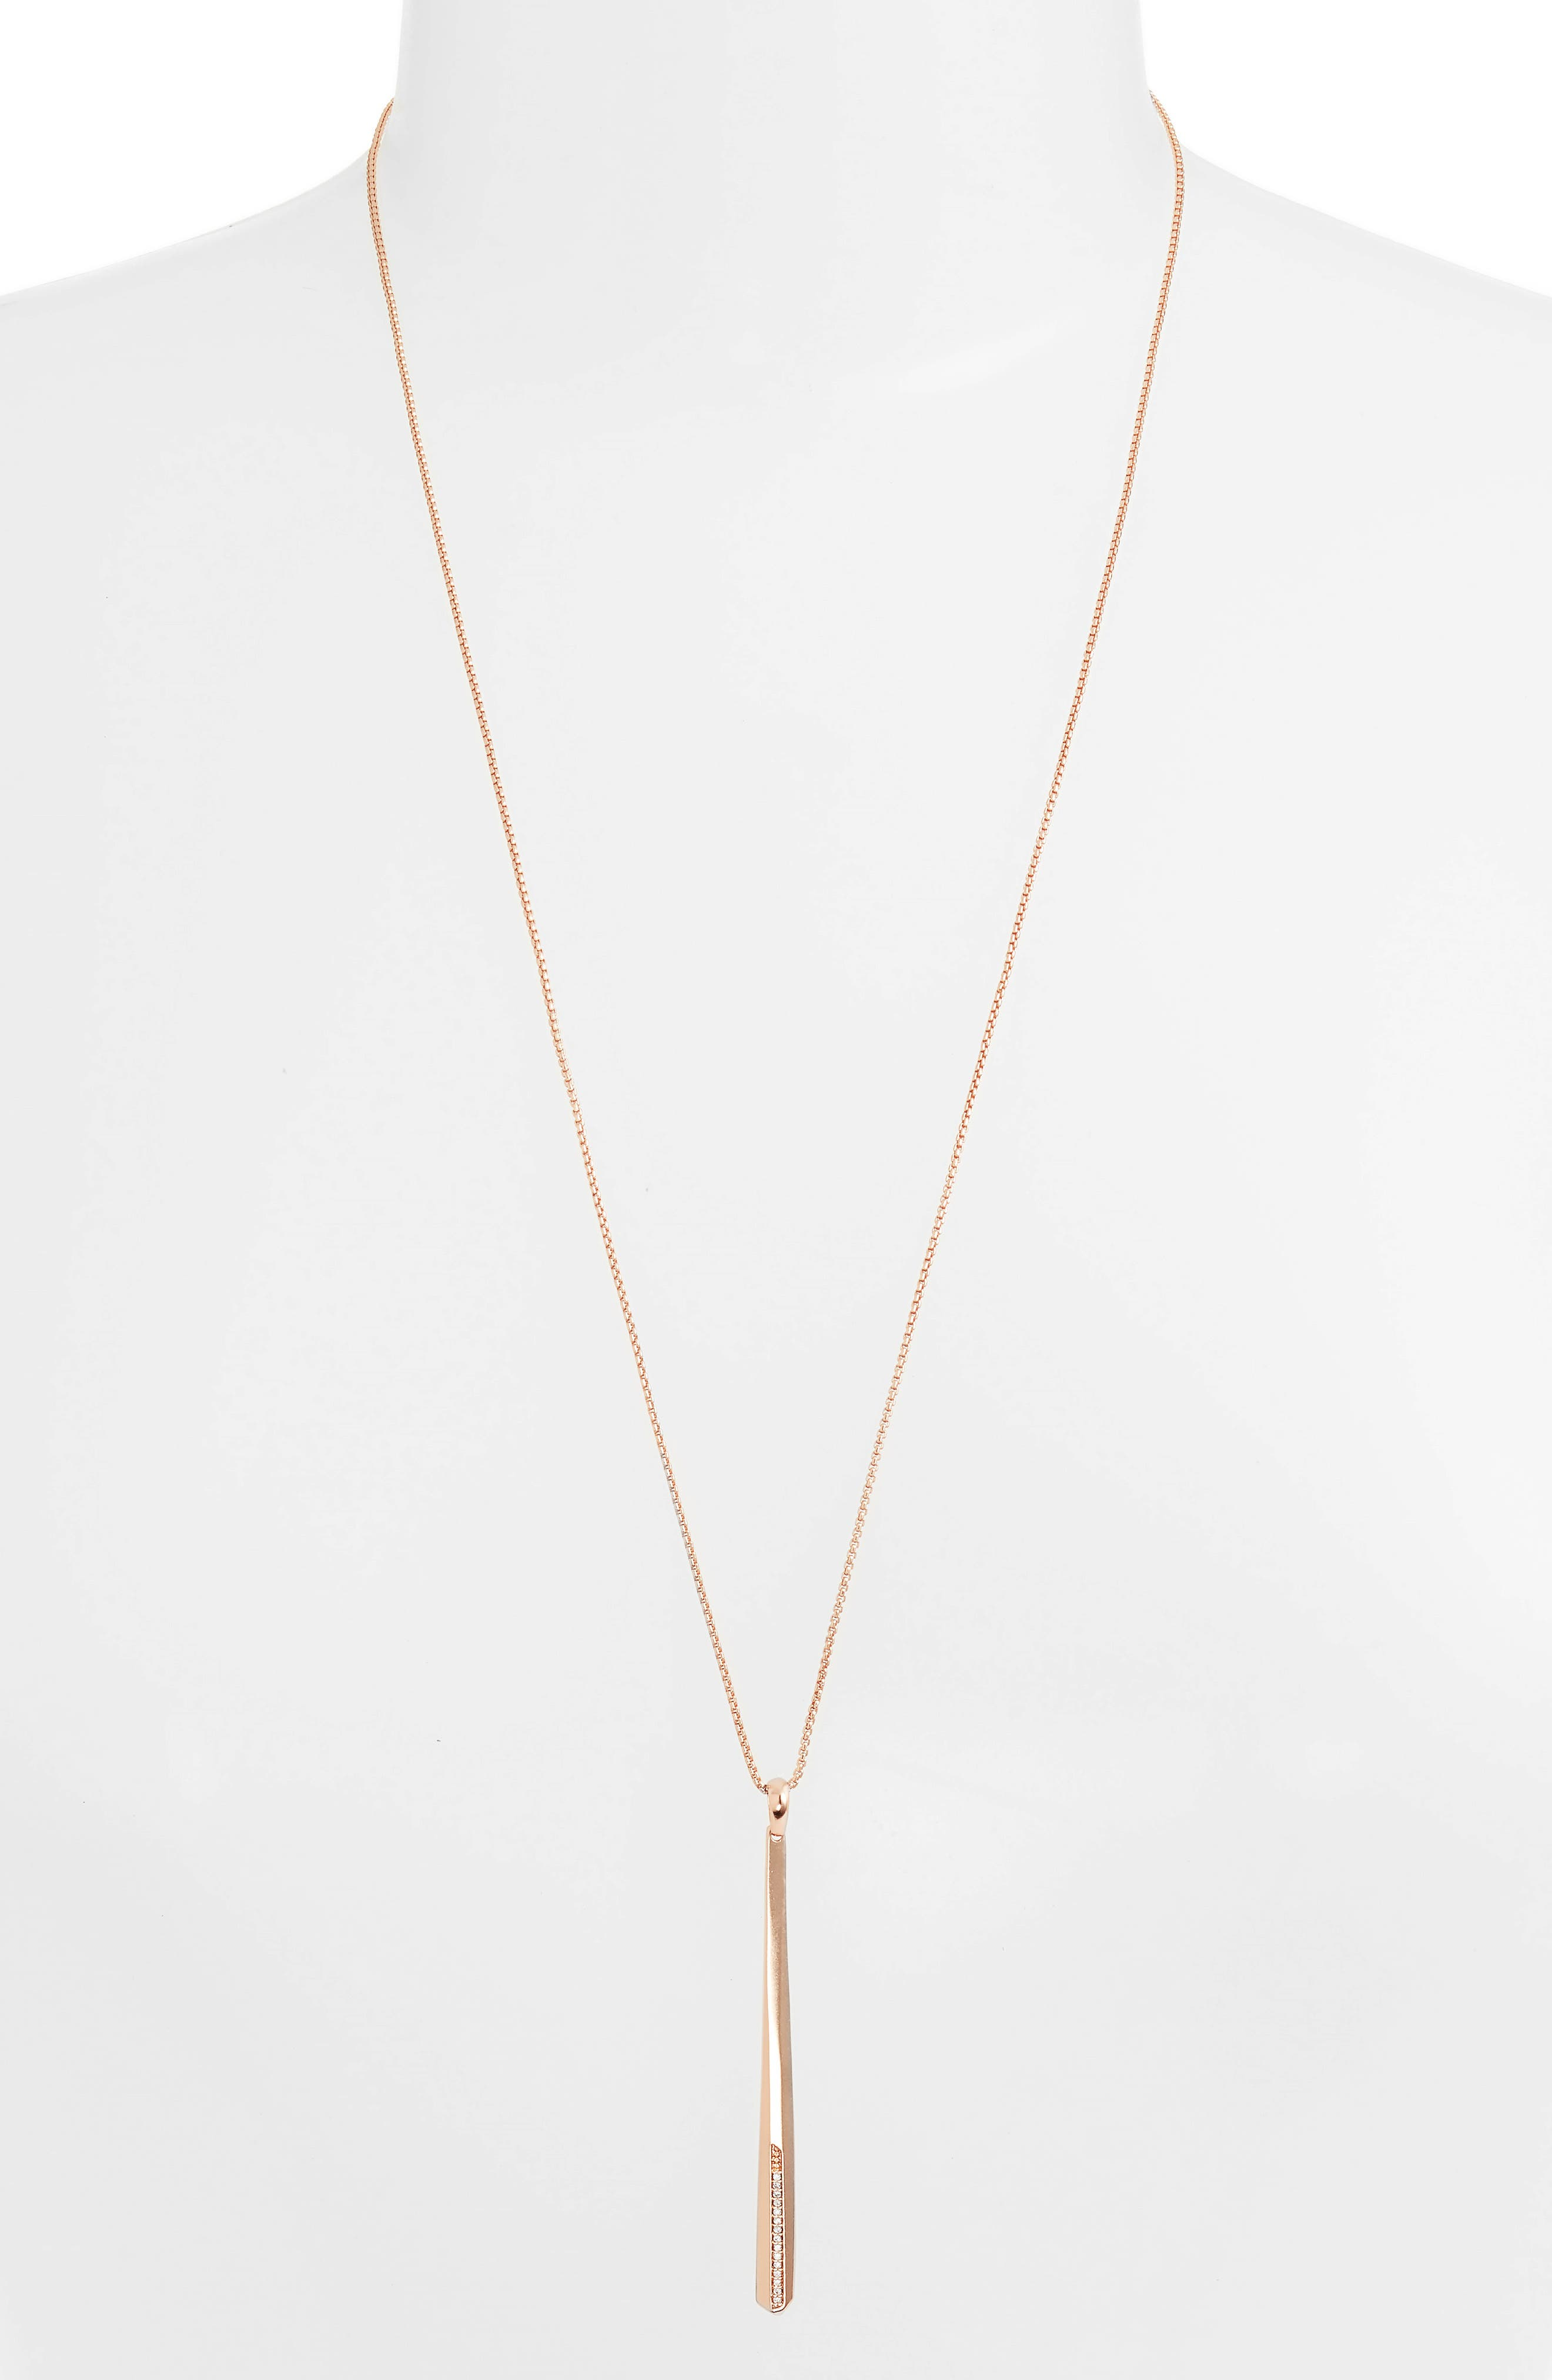 Ro Adjustable Necklace,                             Alternate thumbnail 2, color,                             White Cz/ Rose Gold